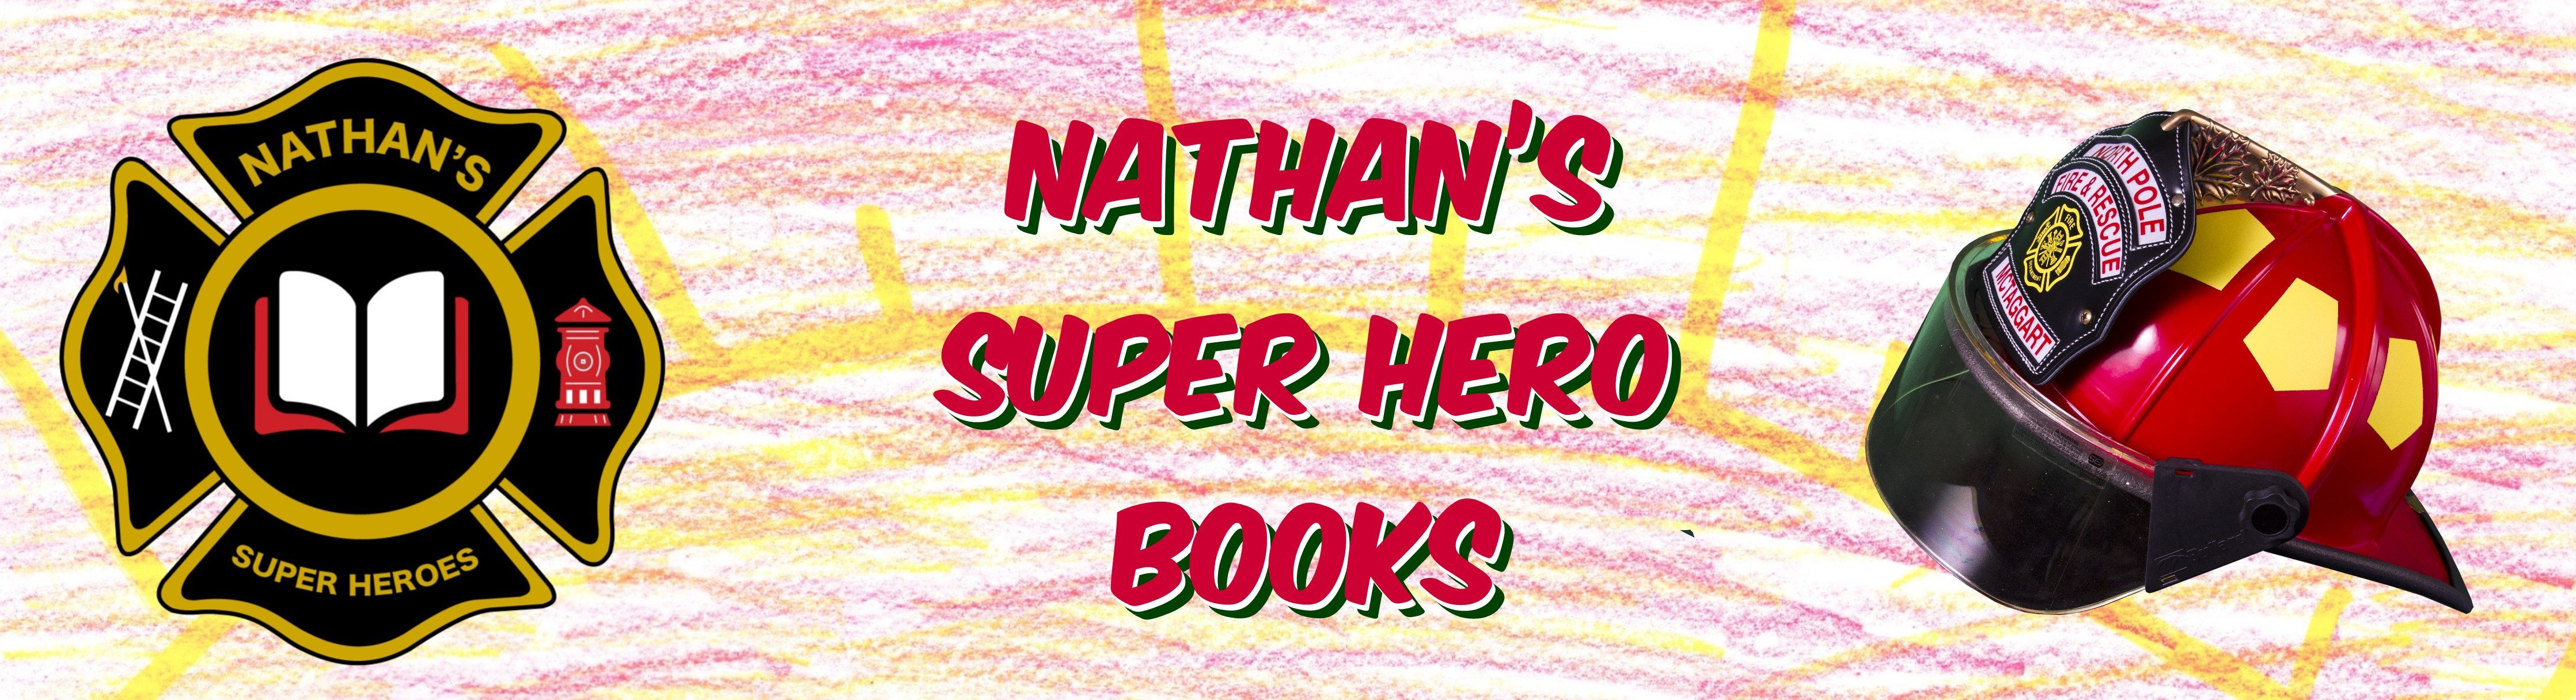 Nathans Super Hero Books